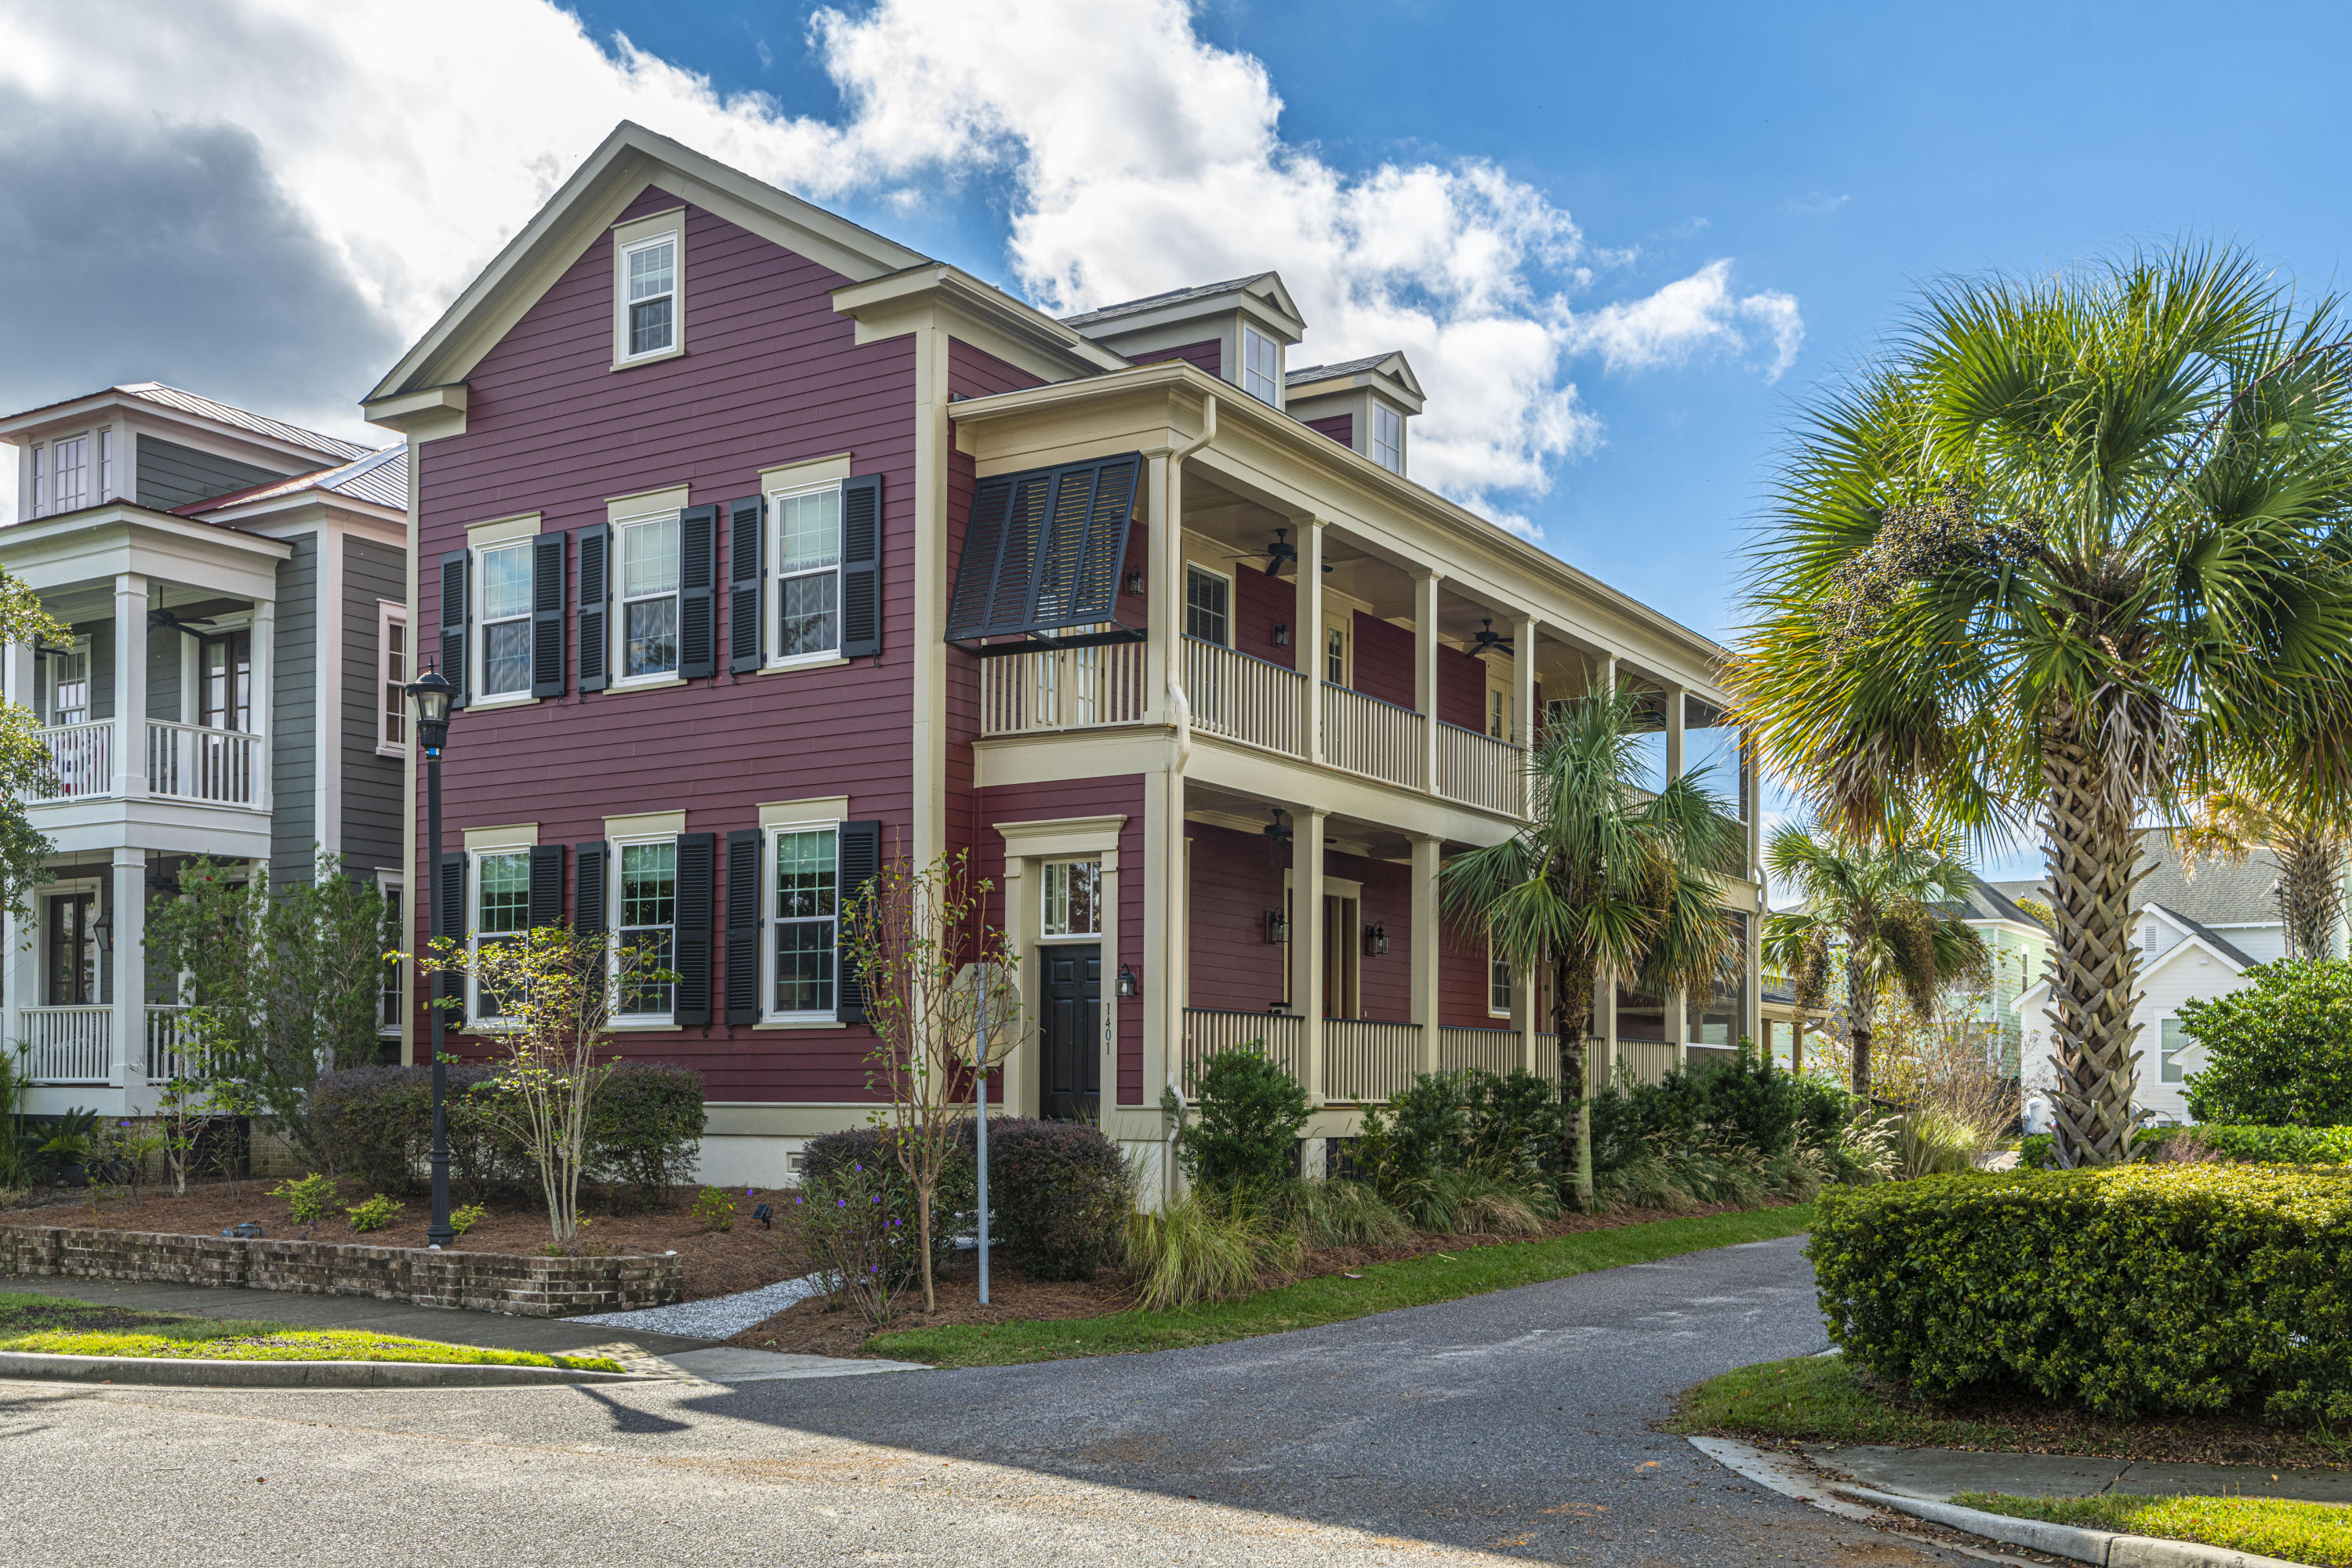 Watermark Homes For Sale - 1401 Lettered Olive, Mount Pleasant, SC - 22